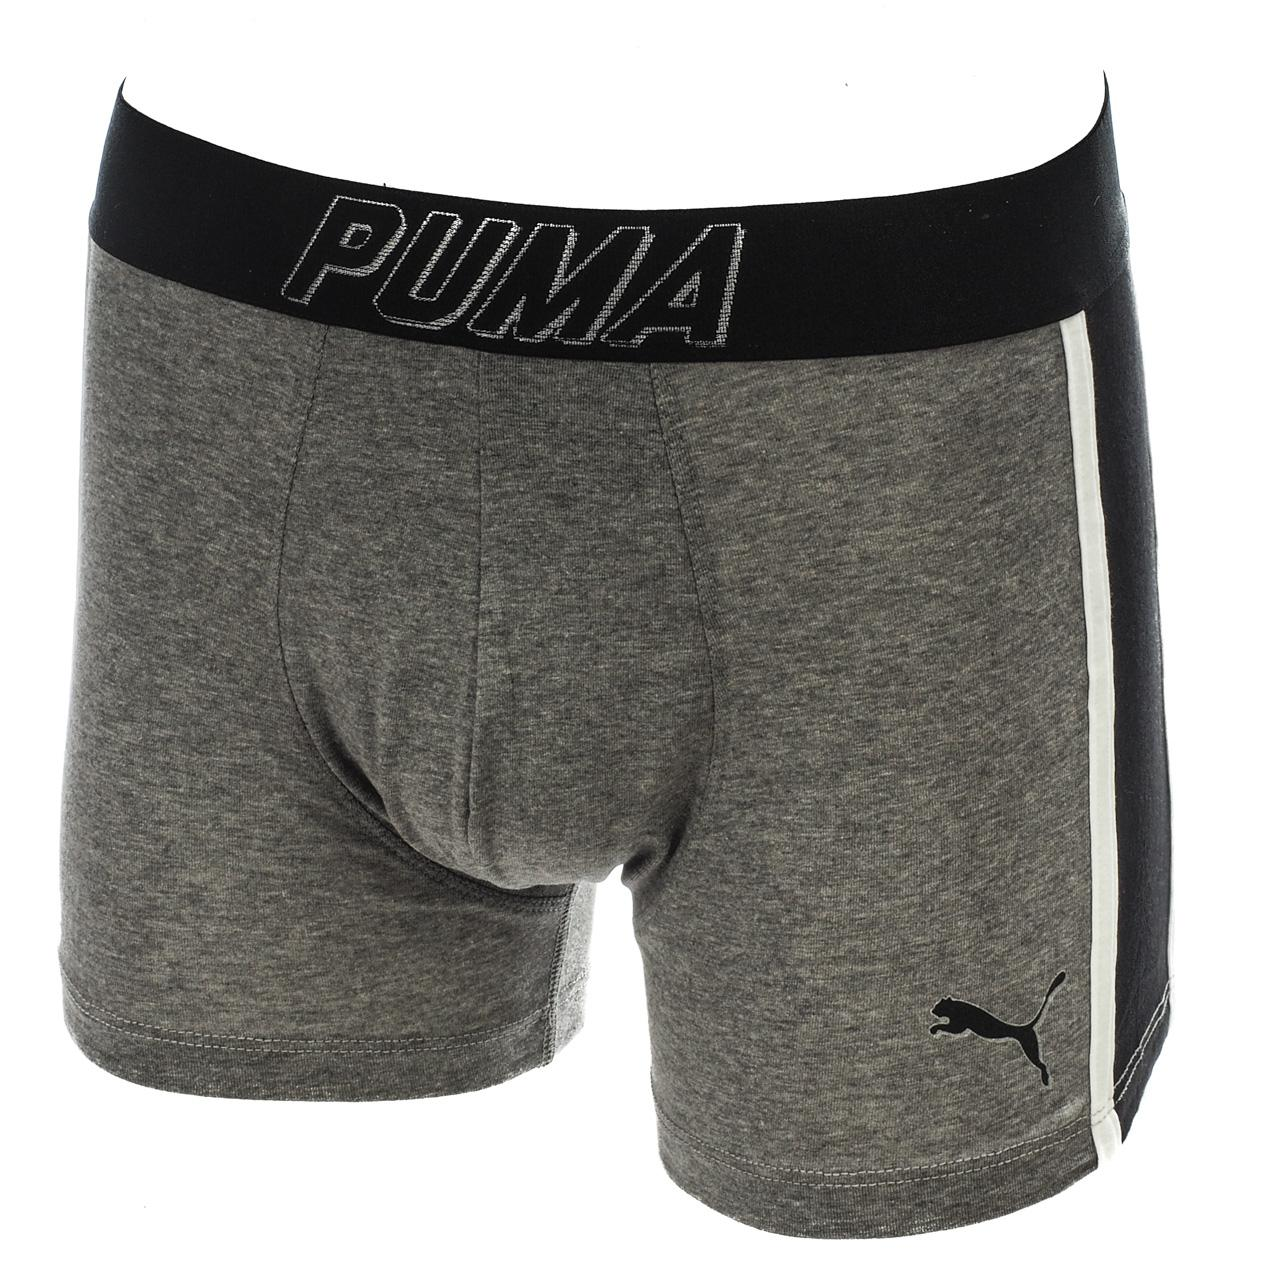 Underwear-Boxer-Puma-Bold-Blk-Groups-Boxer-x2-Assorted-18749-New thumbnail 5